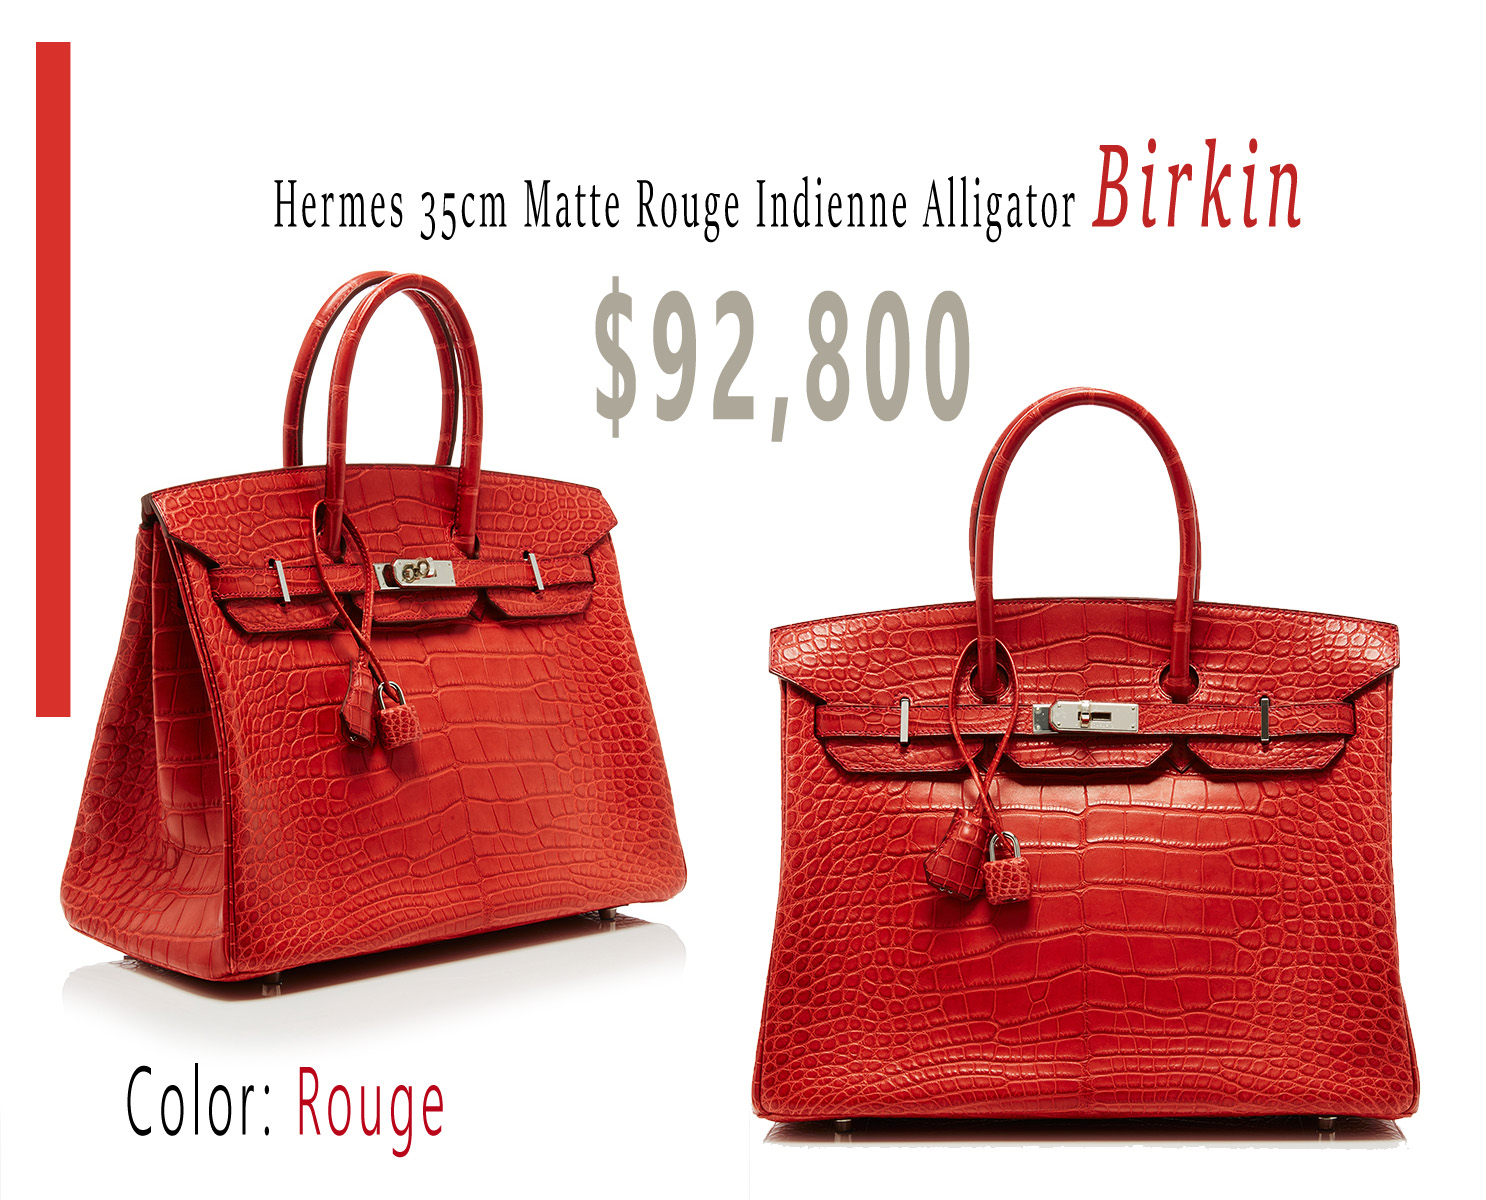 Hermes 35cm Matte Rouge Indienne Alligator Birkin 92800